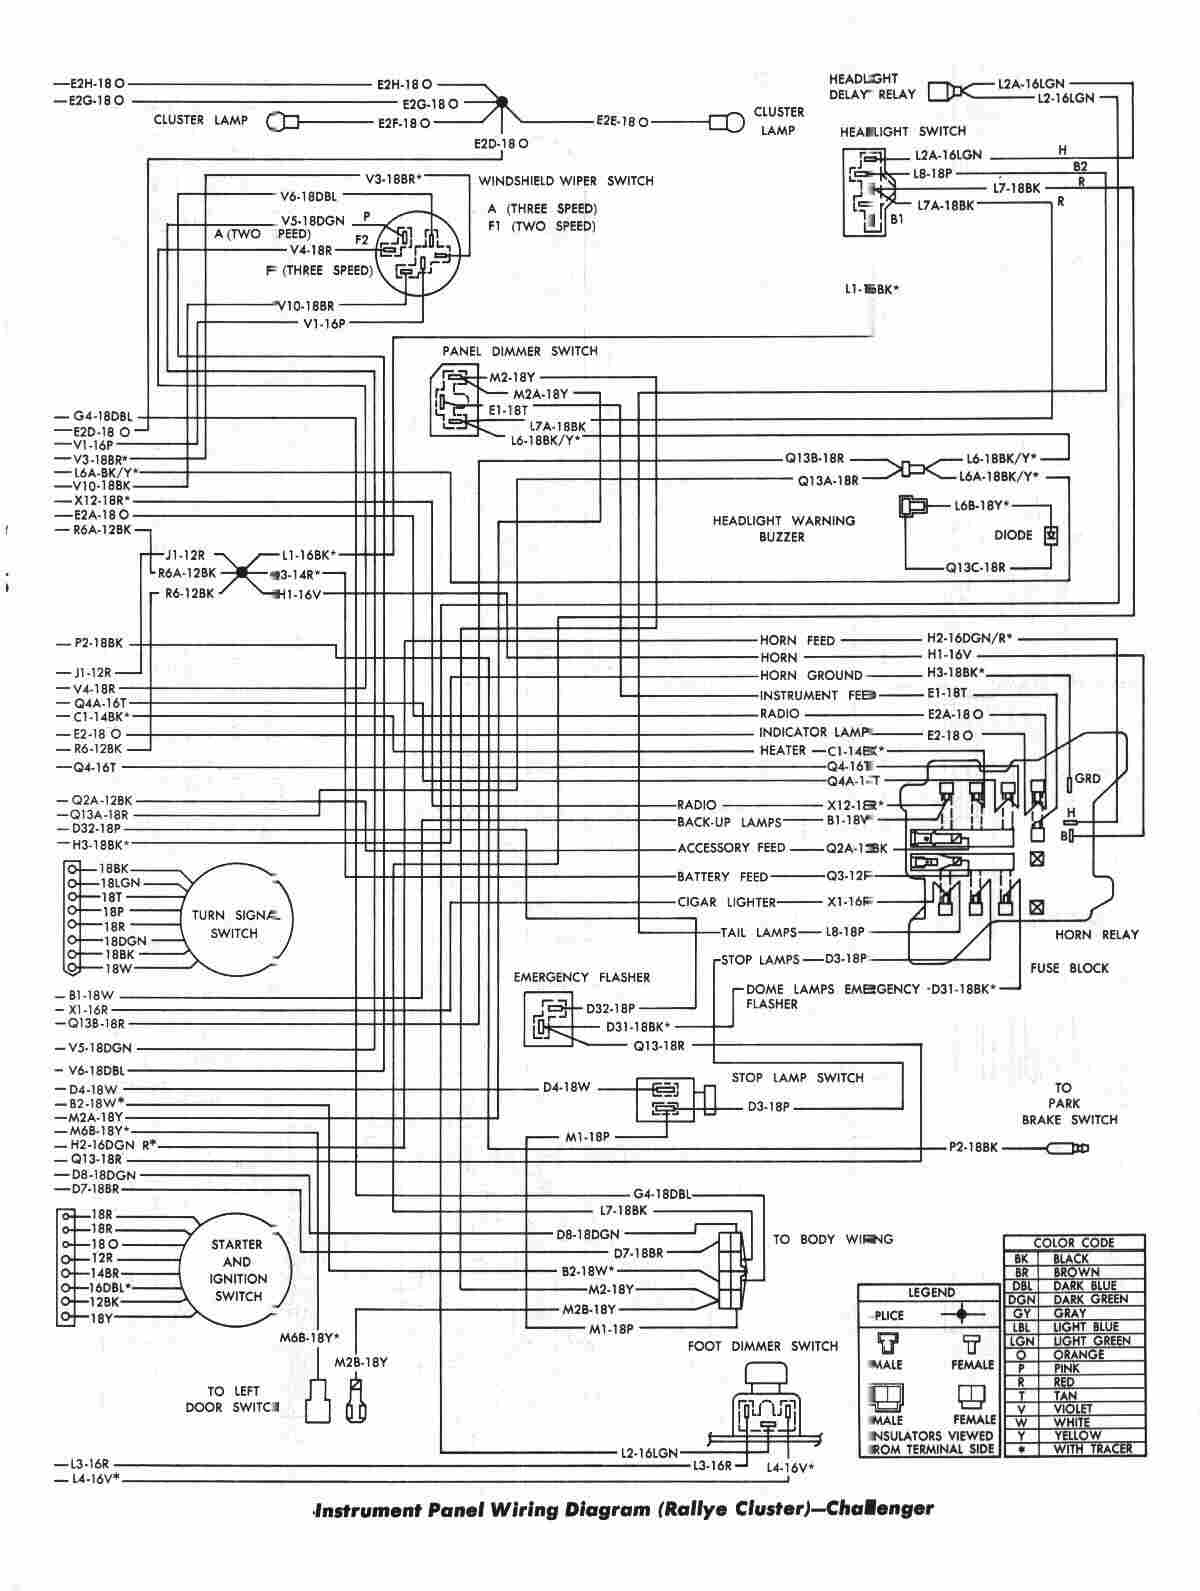 Dodge Challenger 1970 Instrument Panel Wiring Diagram  Rallye Cluster